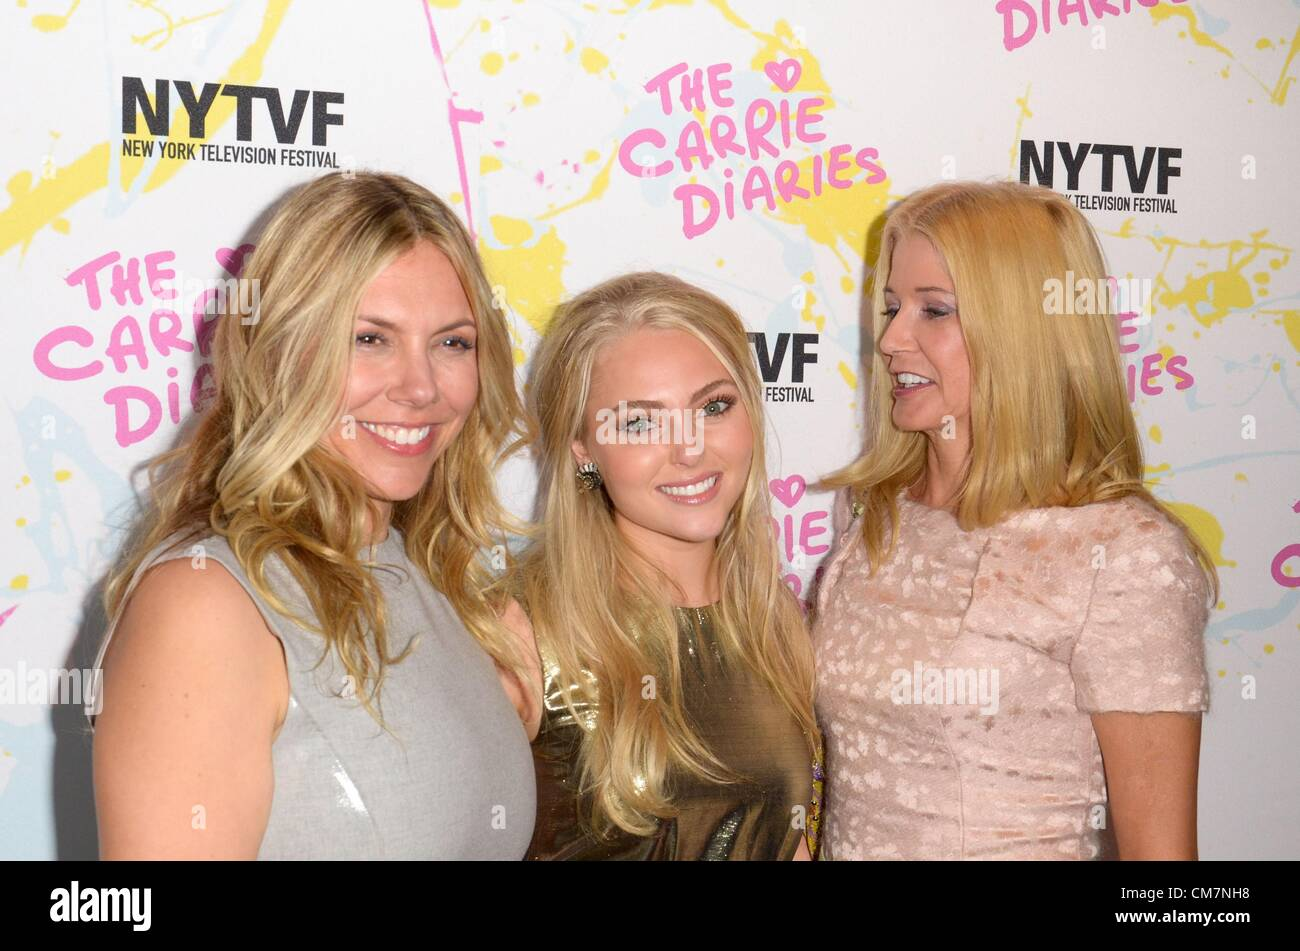 Candace Bushnell Candace Bushnell Amy B Harris At Arrivals For The Carrie Diaries